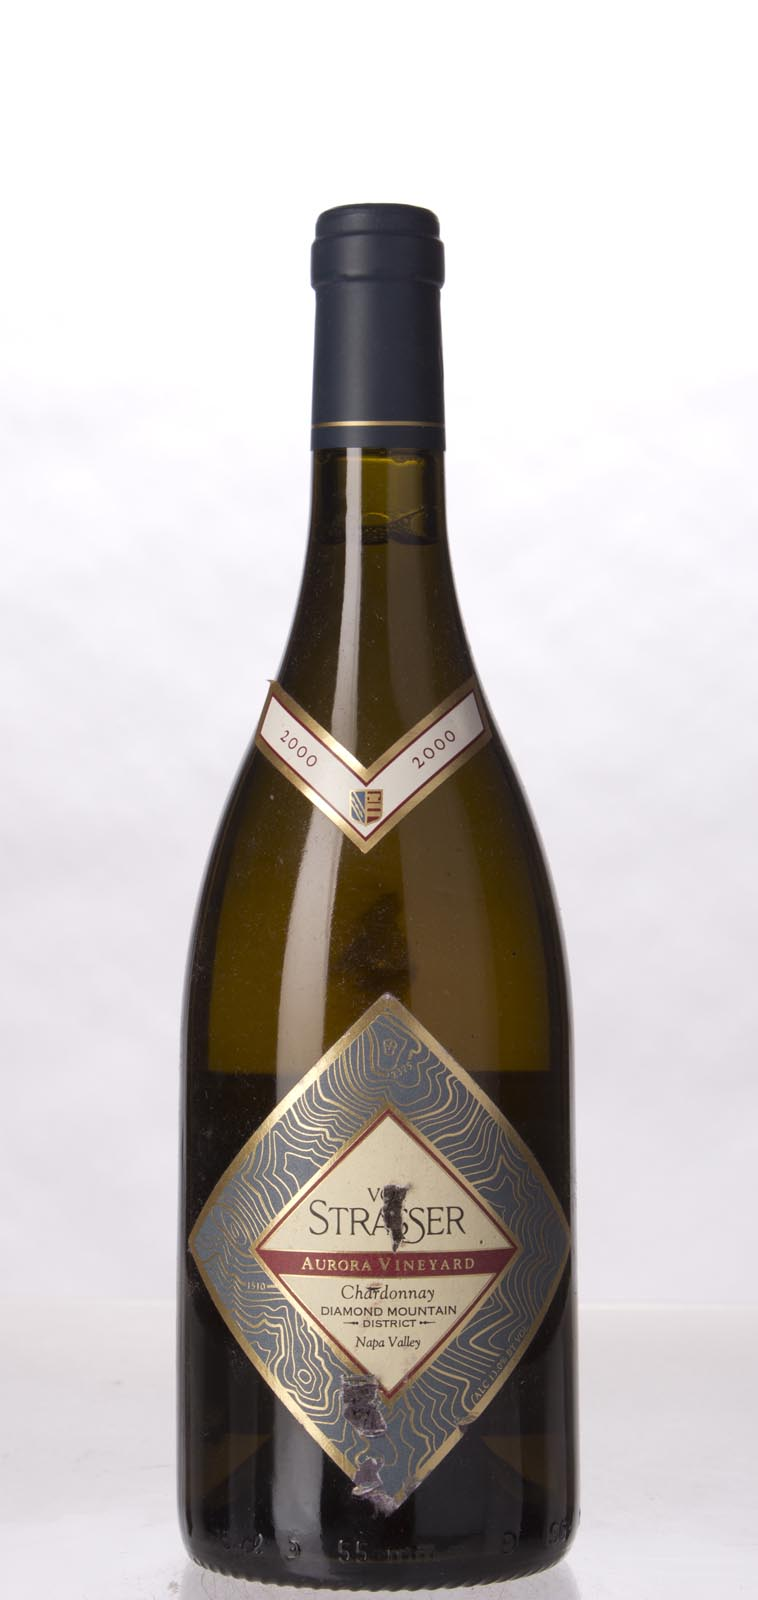 Von Strasser Chardonnay Aurora Vineyard 2000, 750mL () from The BPW - Merchants of rare and fine wines.